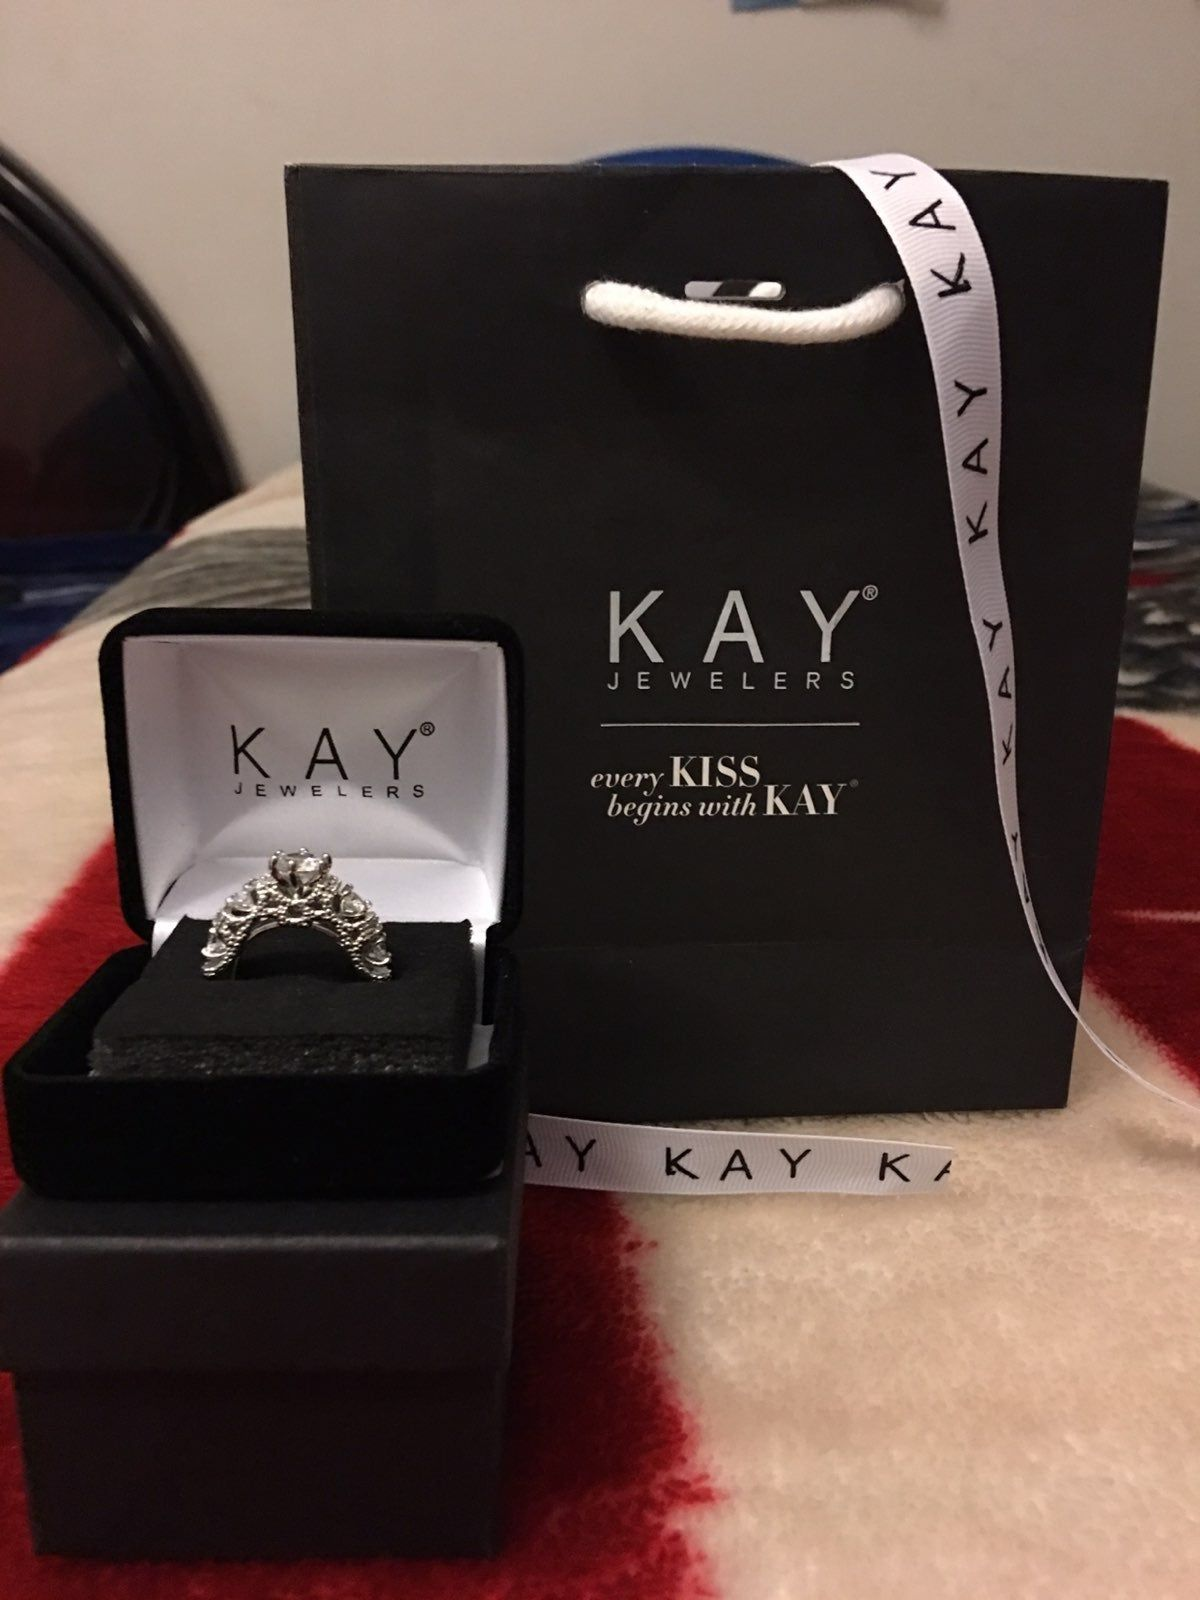 Brand New Kay Jewelers White Sapphire Silver Ring Comes With Gift Bag And Ring Box Included Ring Size 7 Kay Jewelers Kay Jewelers Necklaces Jewelry Promo